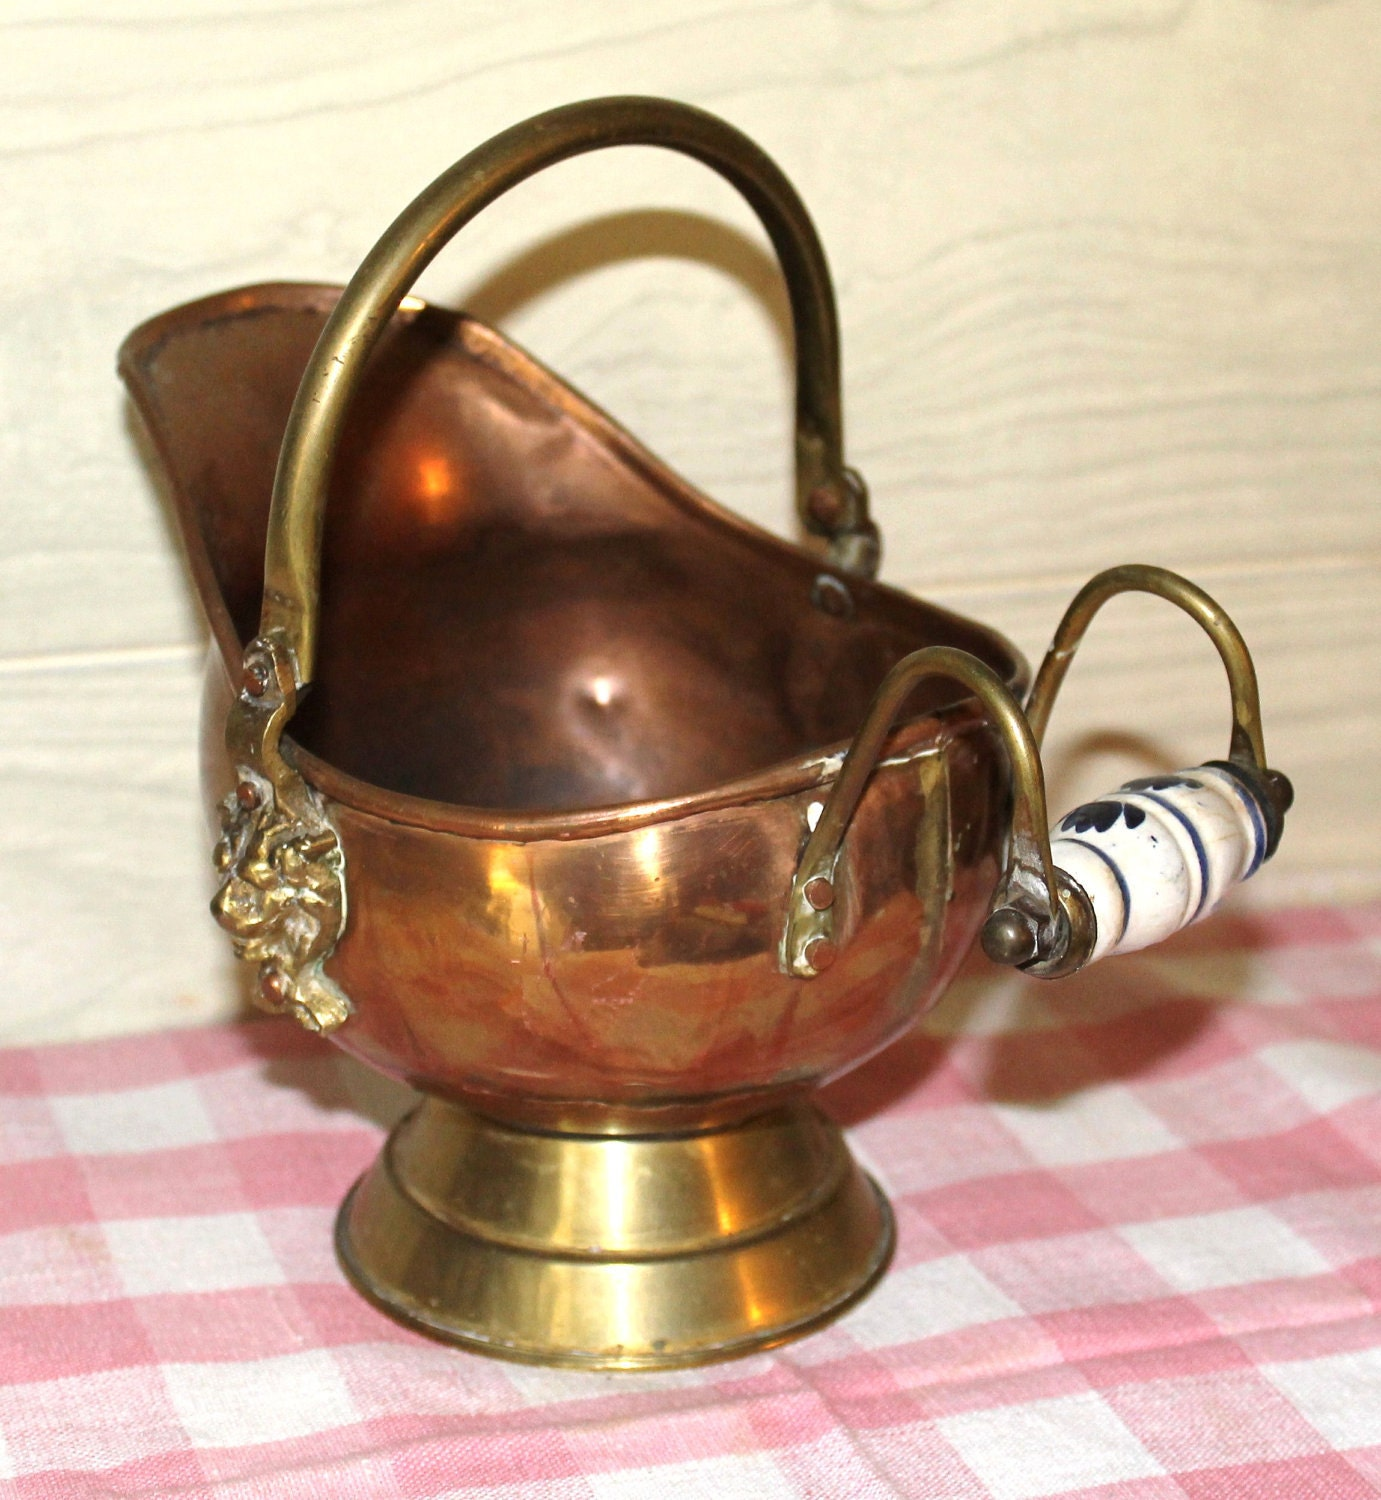 Vintage Copper And Brass Coal Scuttle Home Decor By